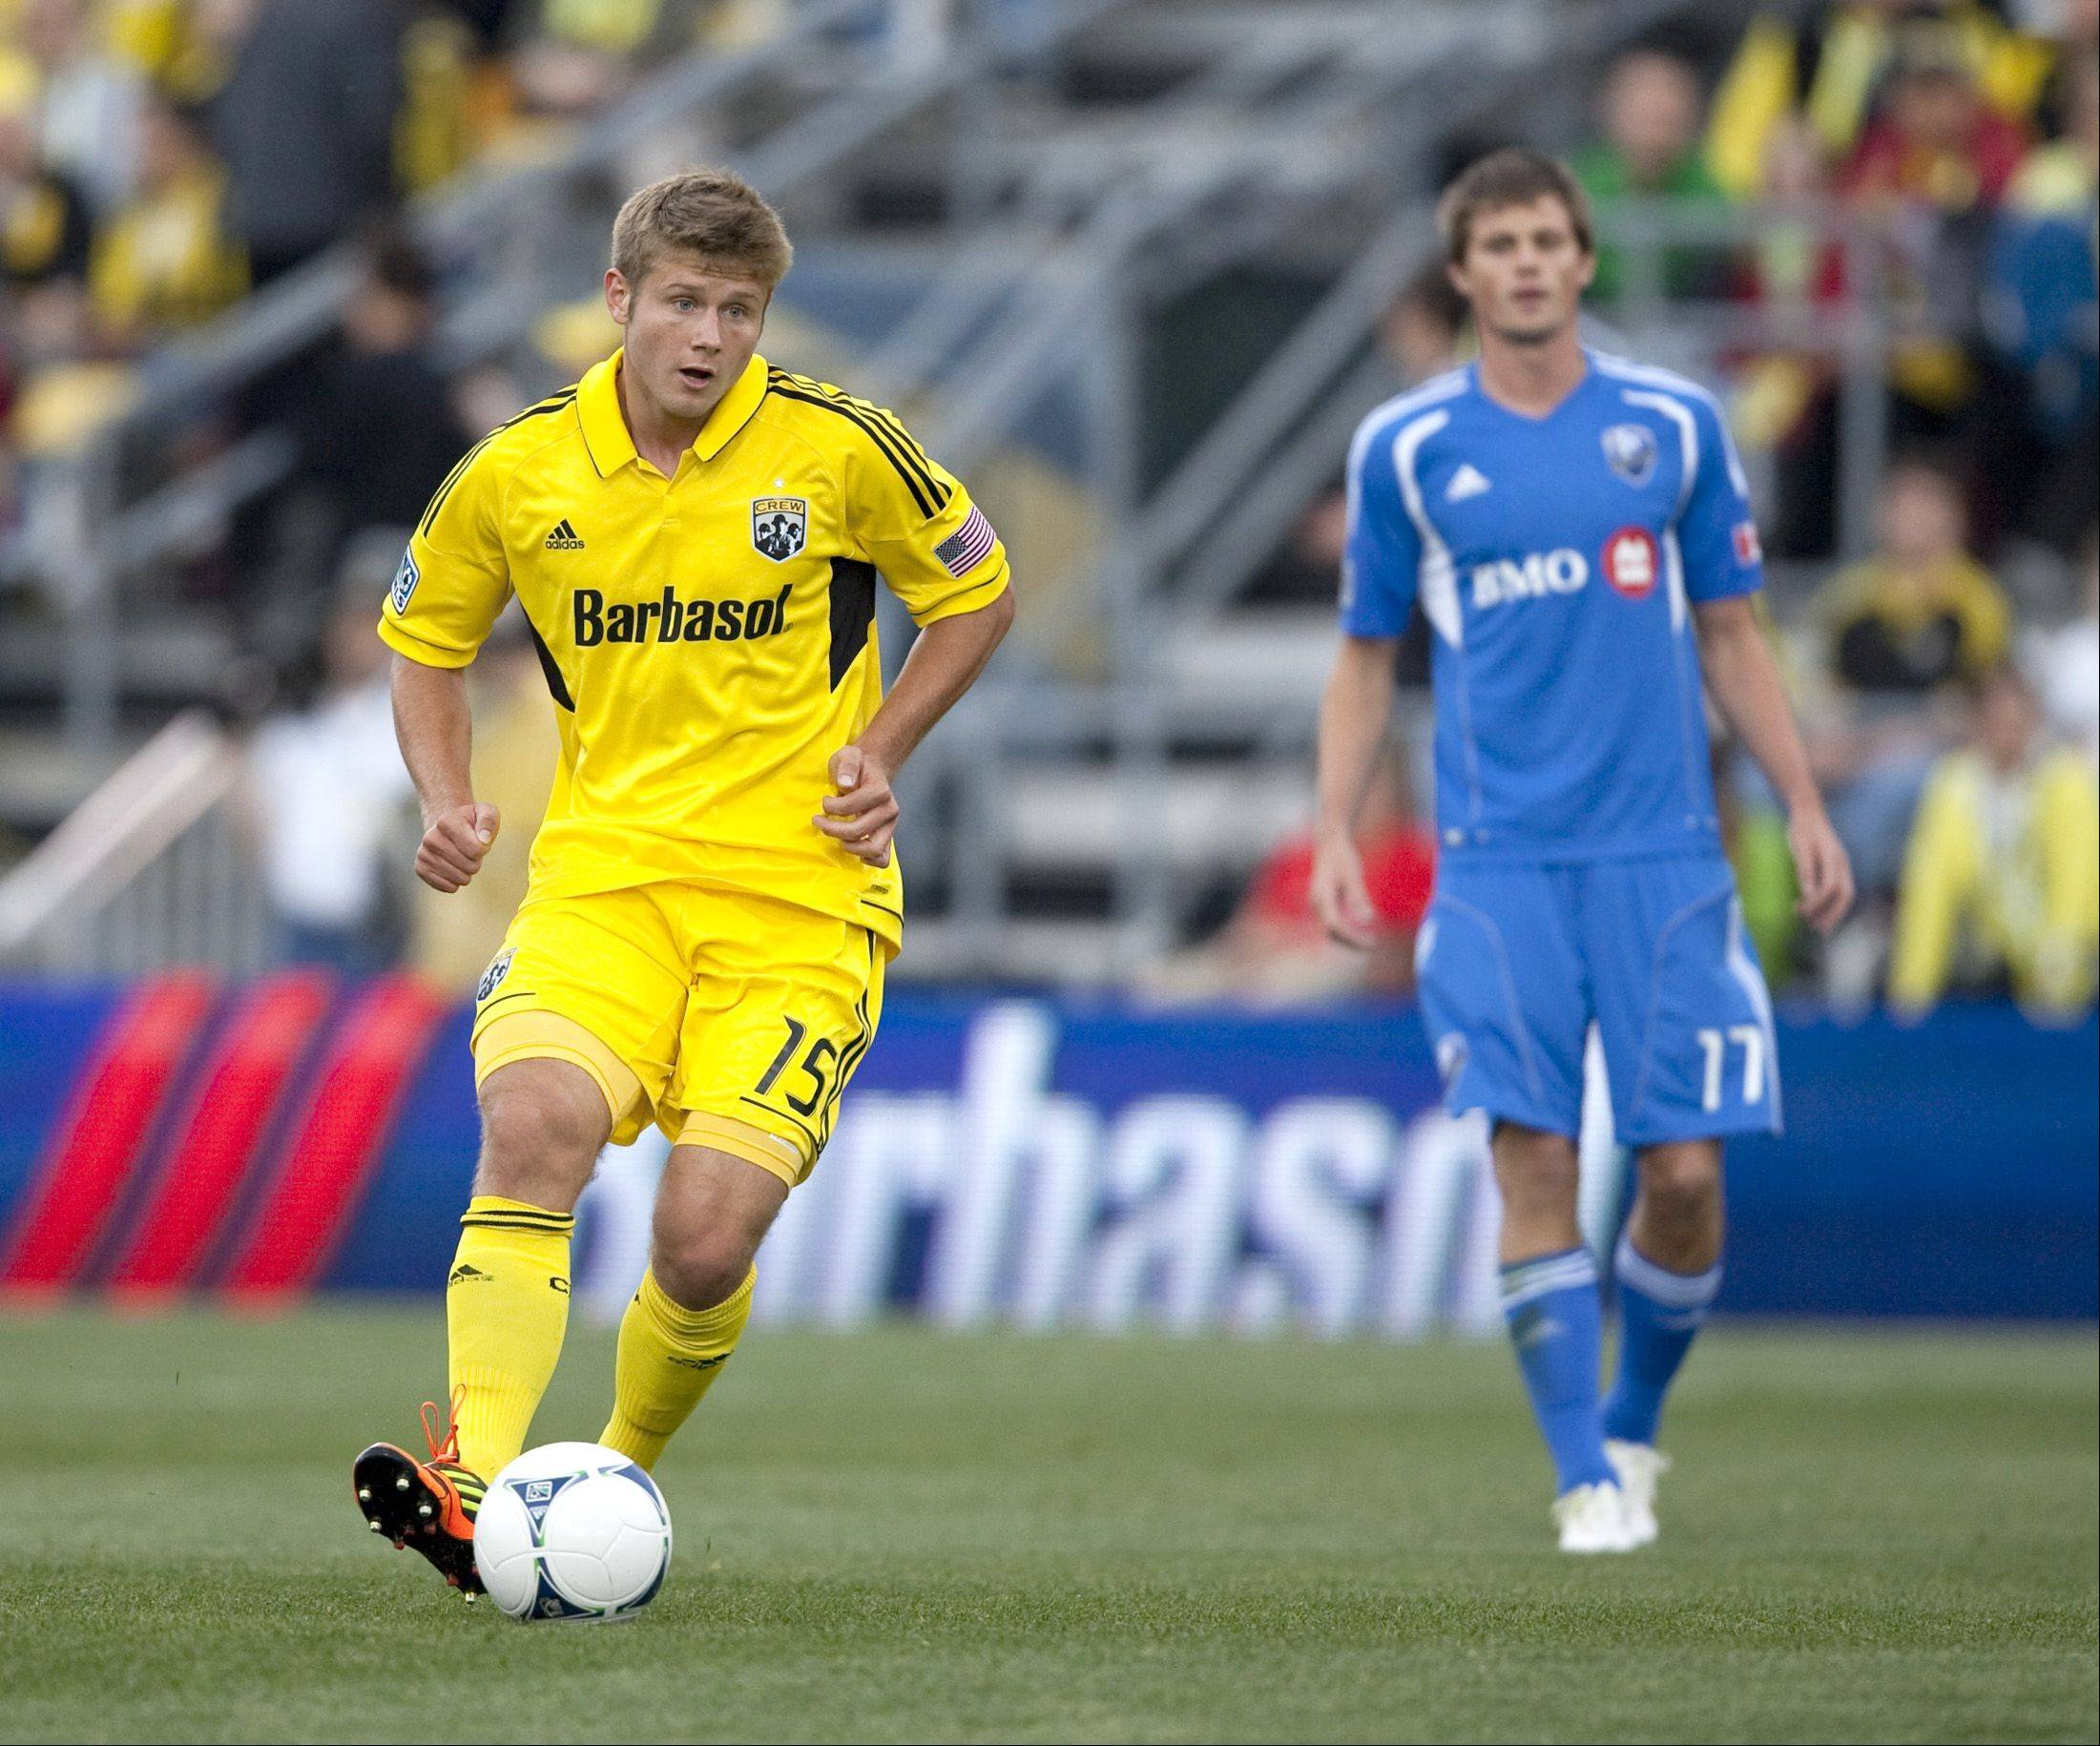 Former Columbus Crew midfielder Kirk Urso (15) will be honored next month in the Kirk Urso Memorial Match featuring the Crew and the University of North Carolina. The event will raise funds for a foundation that supports heart health research and programming. Urso, a native of Lombard, died last August from a congenital heart defect.